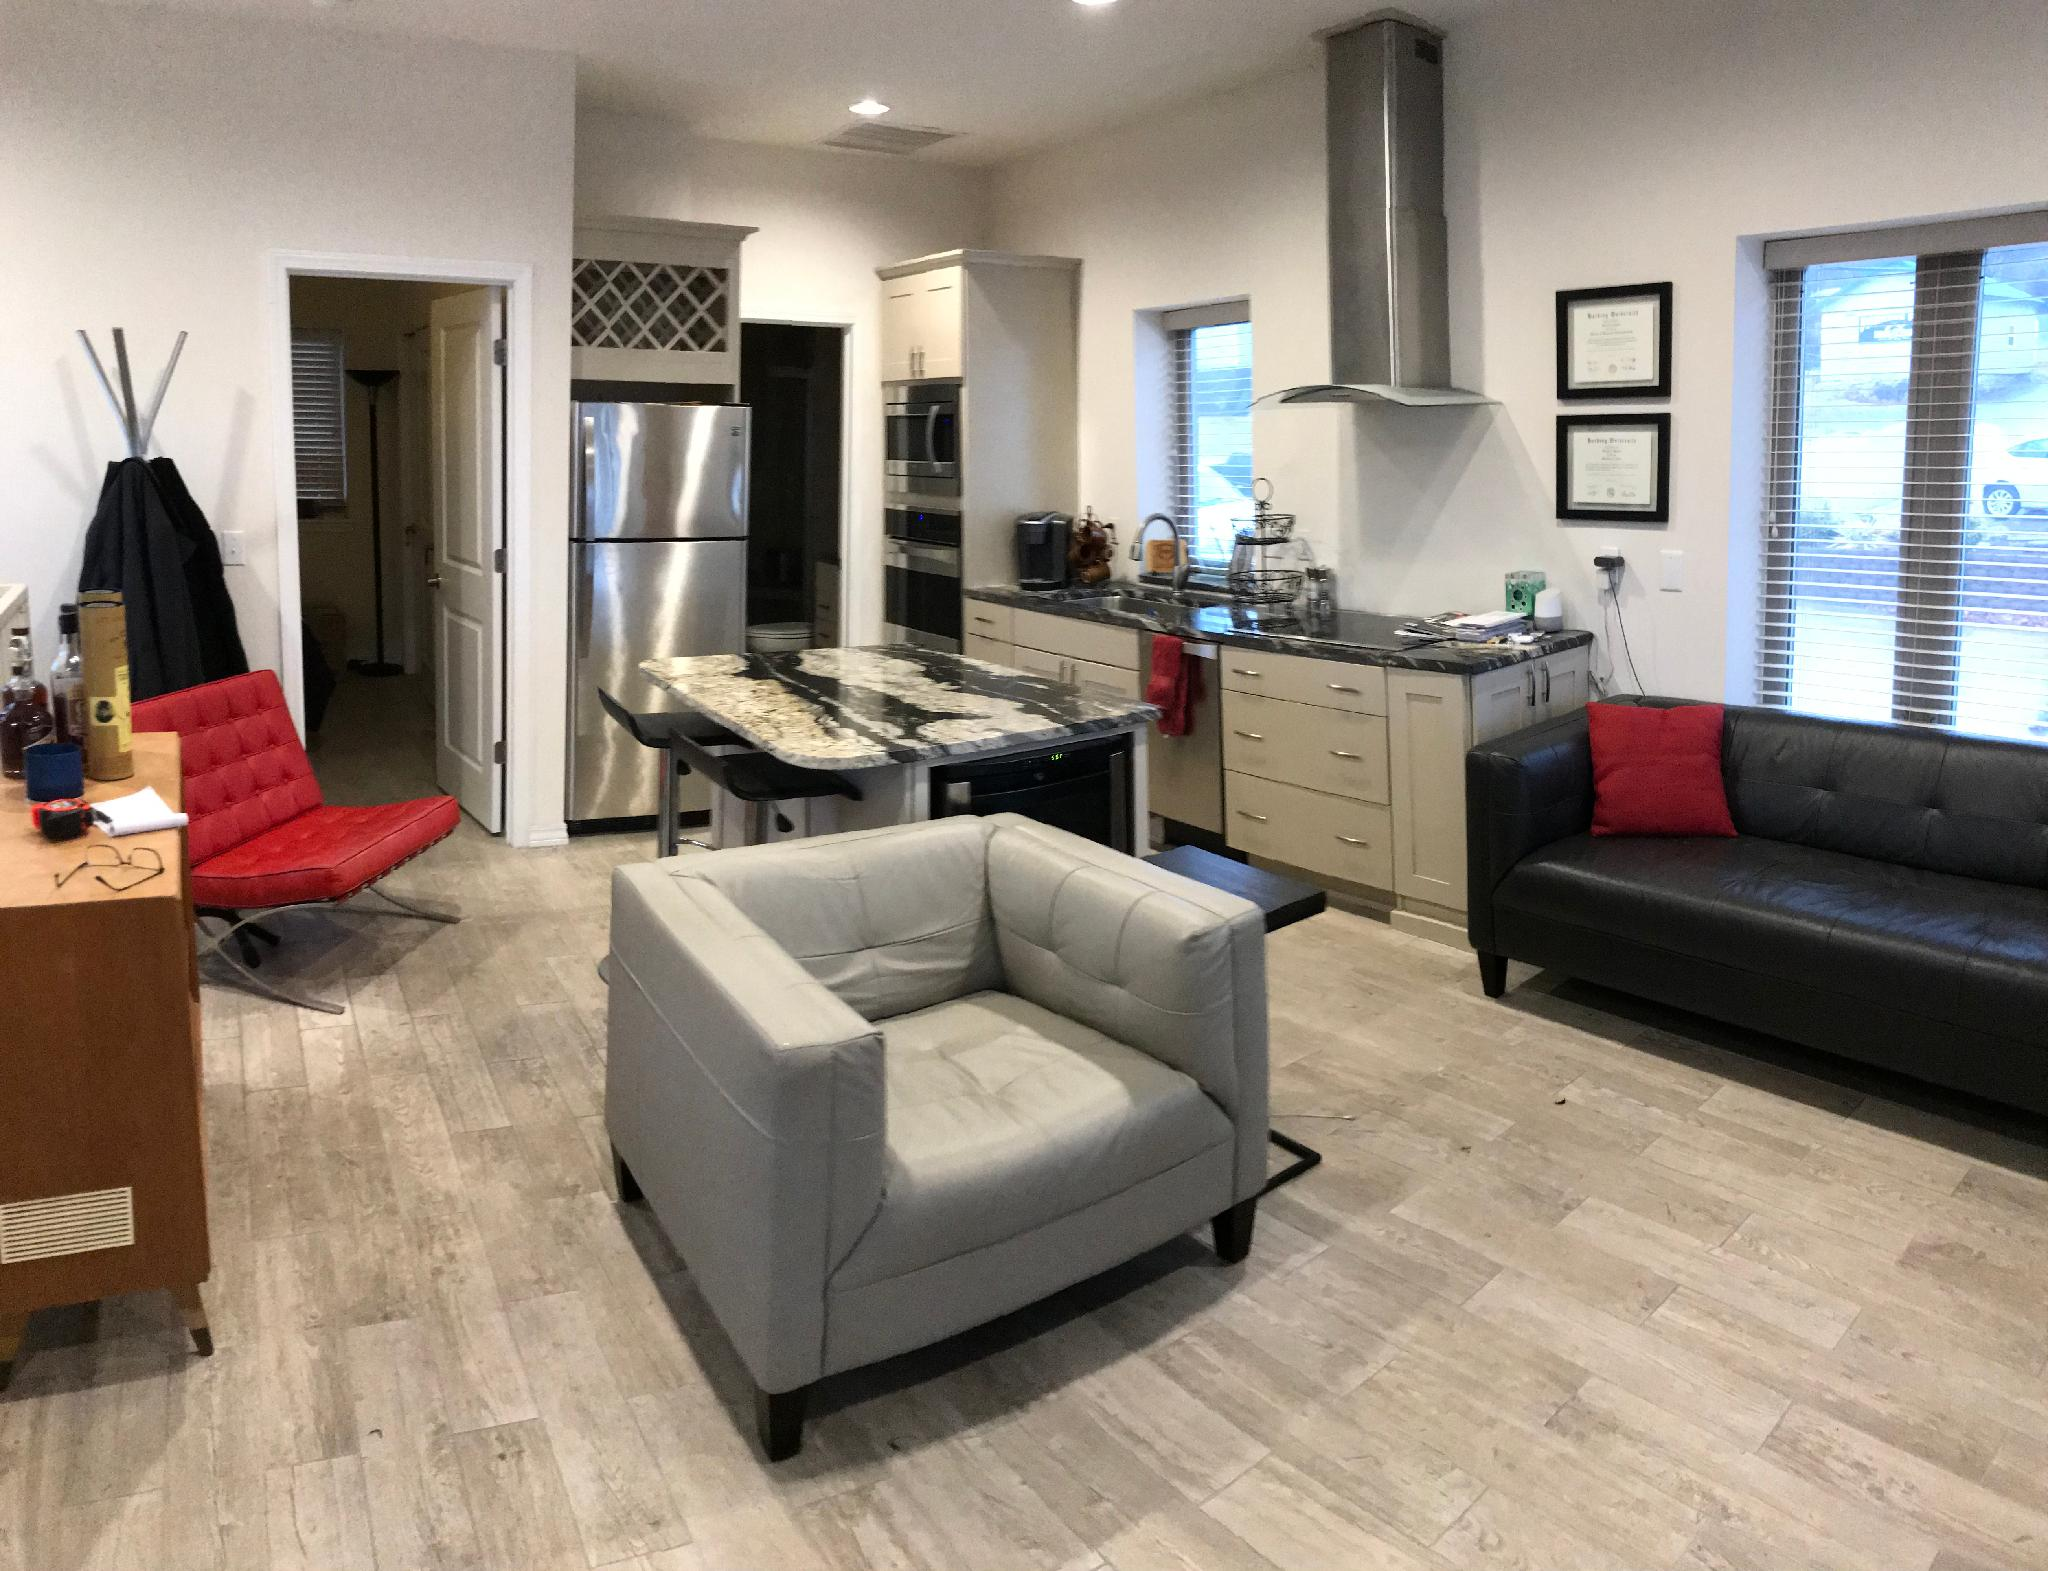 `Downtown Loft Near Branson Landing and Convention Center, WIFI, Roof Deck, Fireplace